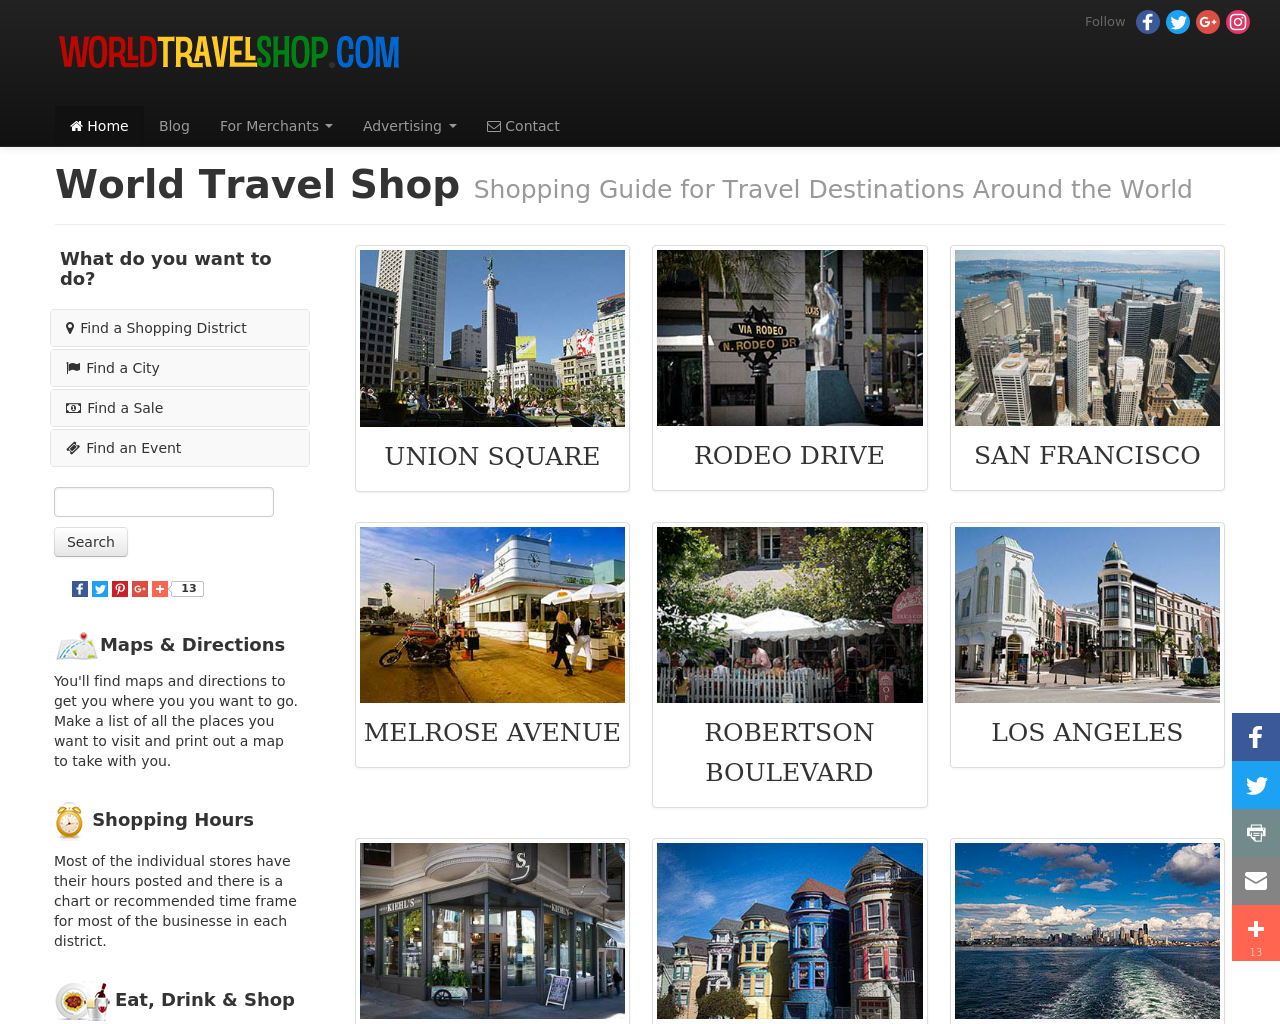 World-Travel-Shop-San-Francisco-Advertising-Reviews-Pricing